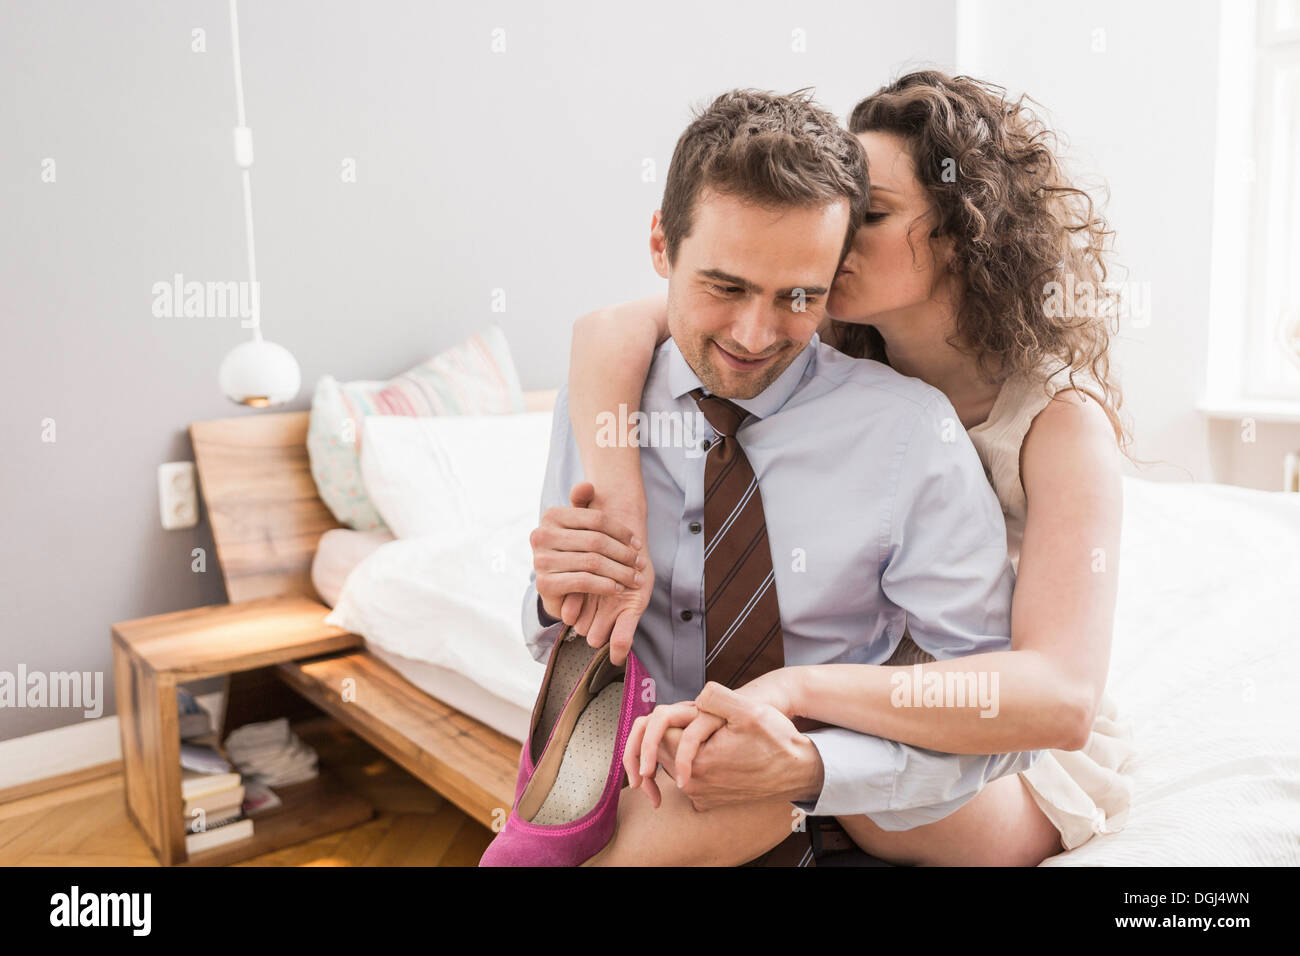 Mid adult couple face to face with arm around, smiling and holding shoe - Stock Image